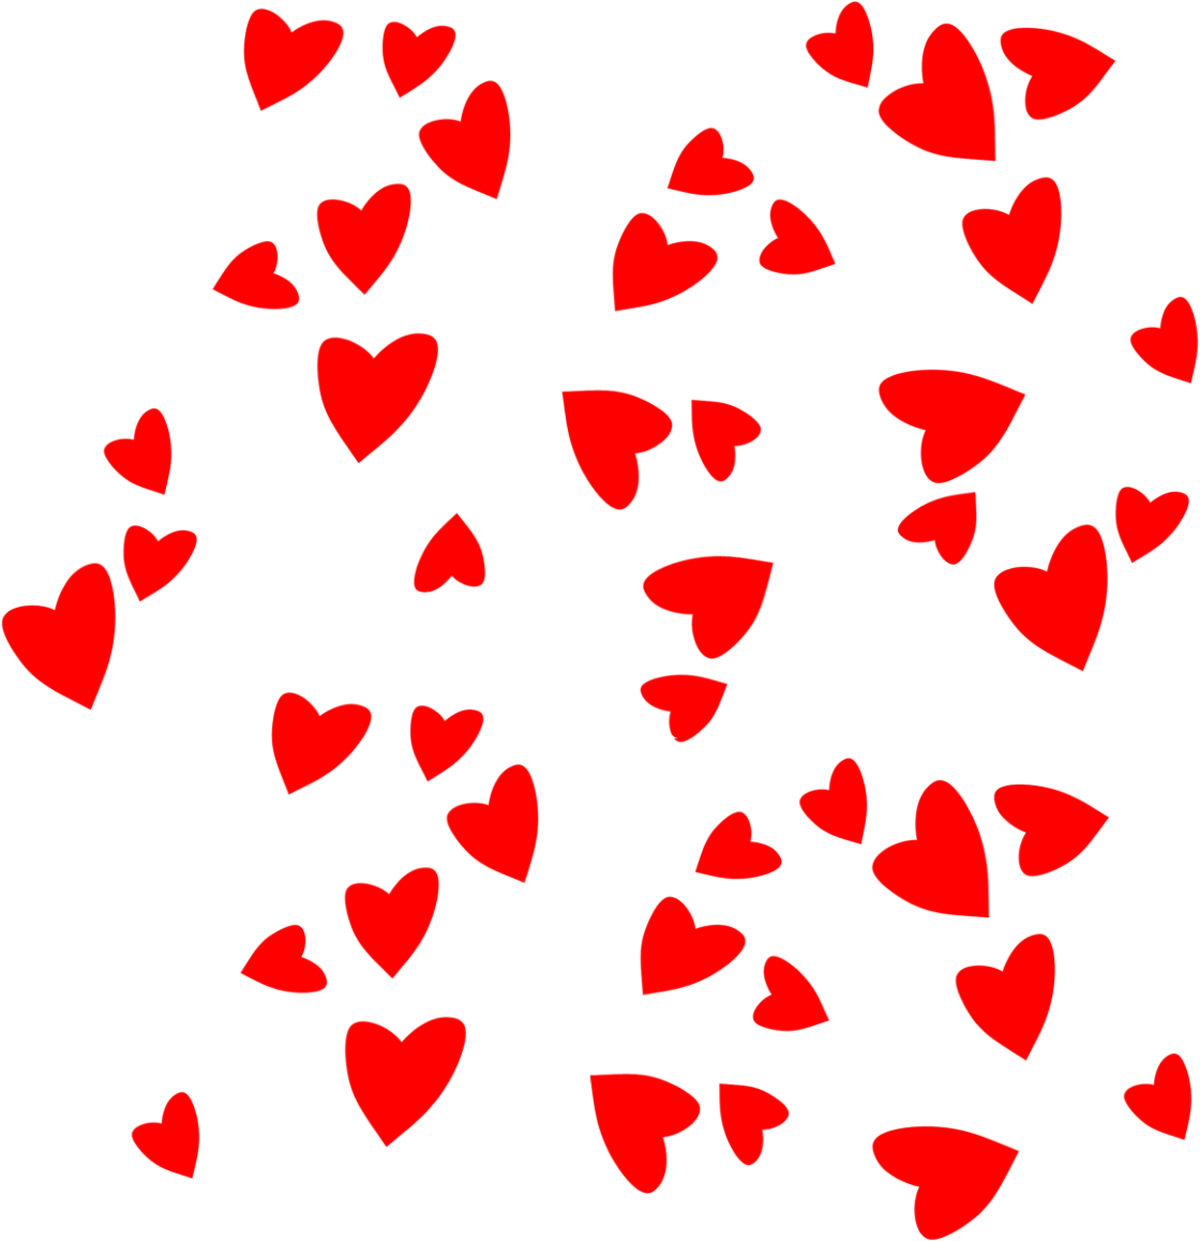 Valentines day clipart background svg black and white download Free Heart Images For Valentines Day, Download Free Clip Art ... svg black and white download